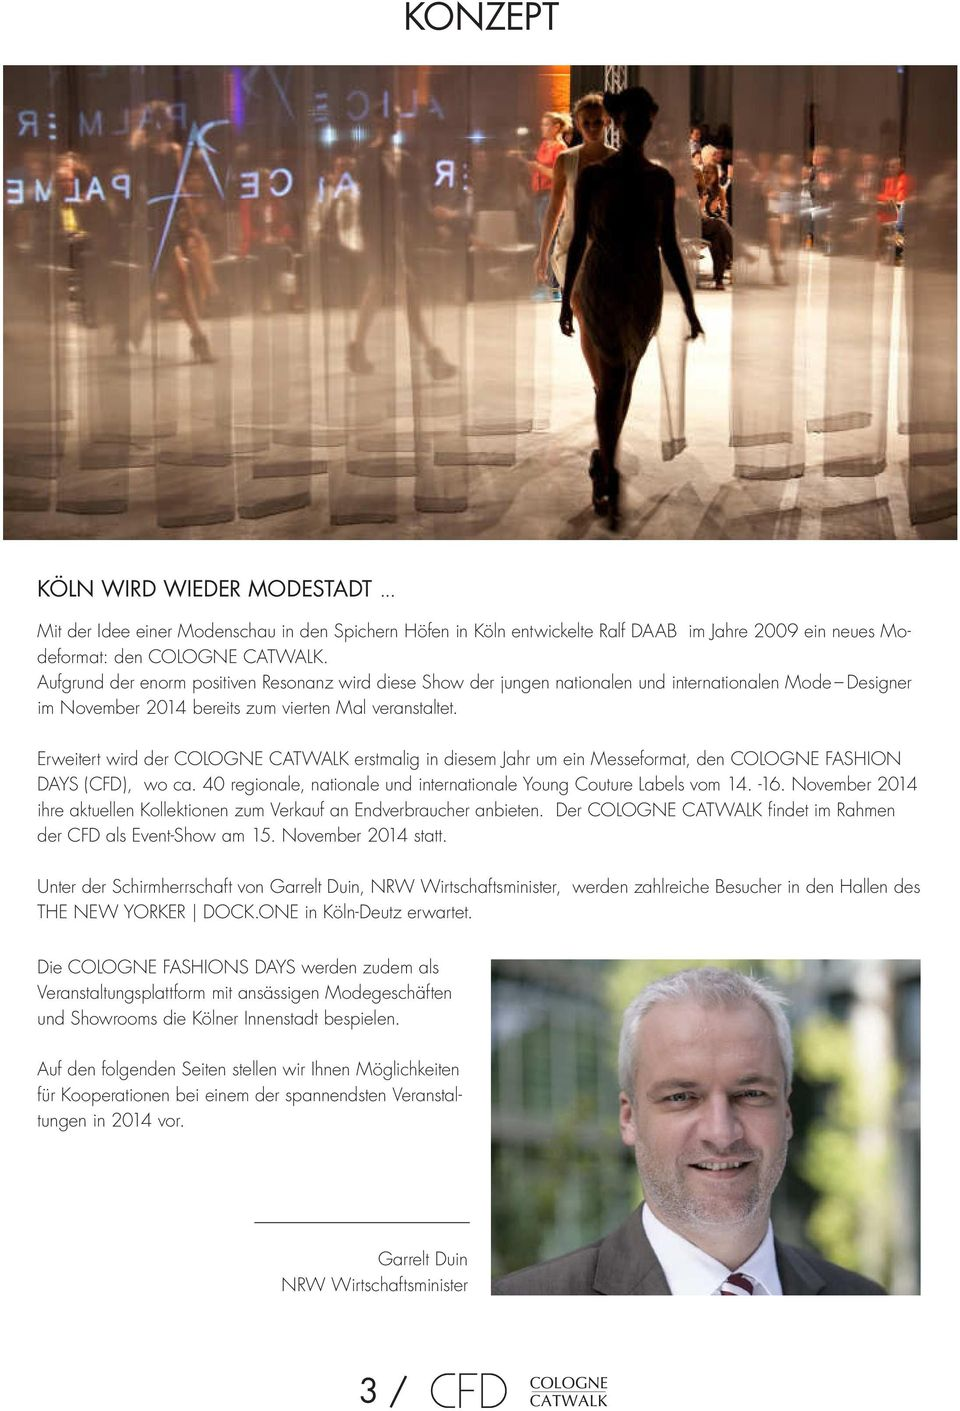 Erweitert wird der COLOGNE CATWALK erstmalig in diesem Jahr um ein messeformat, den COLOGNE FASHION days (CFd), wo ca. 40 regionale, nationale und internationale Young Couture Labels vom 14. -16.